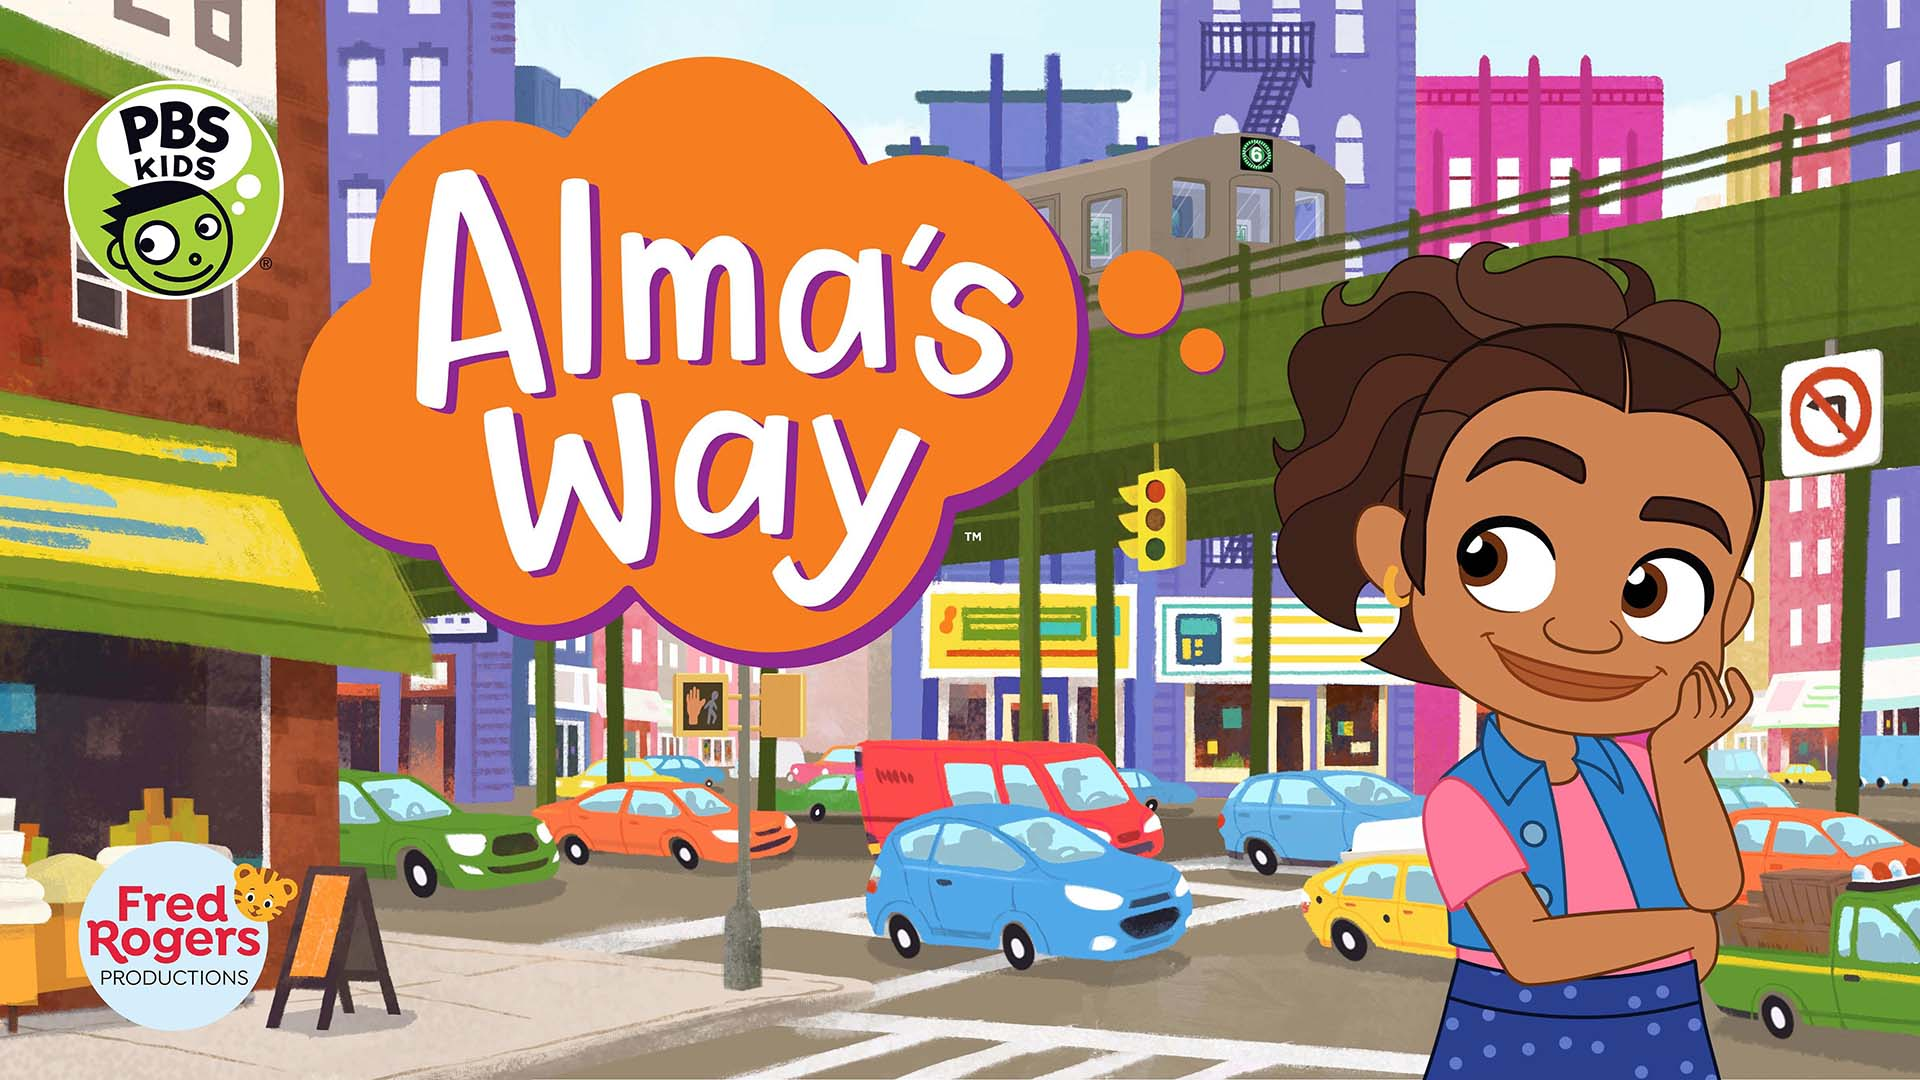 An illustration of a young Latinx girl on the sidewalk amid a bustling city corner